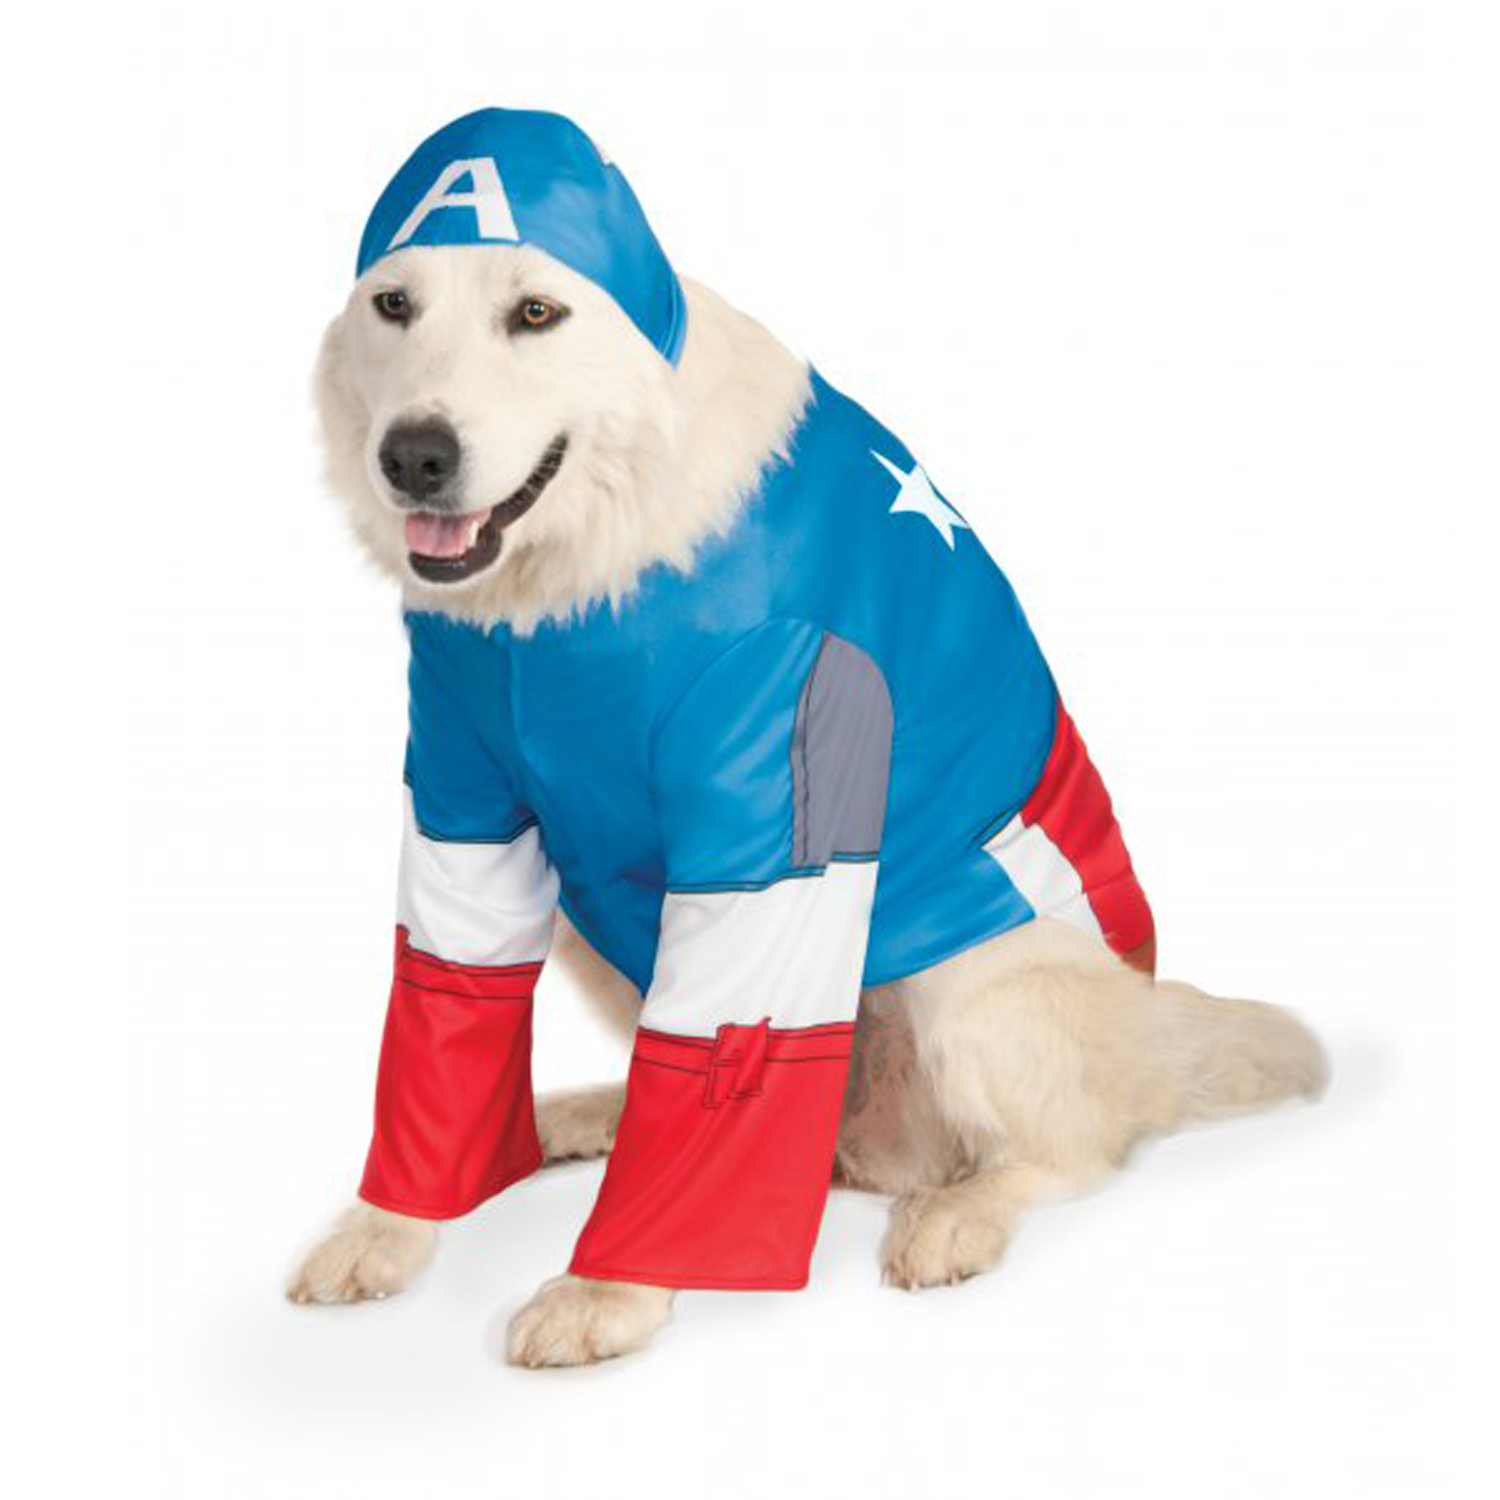 Big Dog Marvel Captain America Dog Costume  sc 1 st  BaxterBoo & Big Dog Marvel Captain America Dog Costume with Same Day Shipping ...